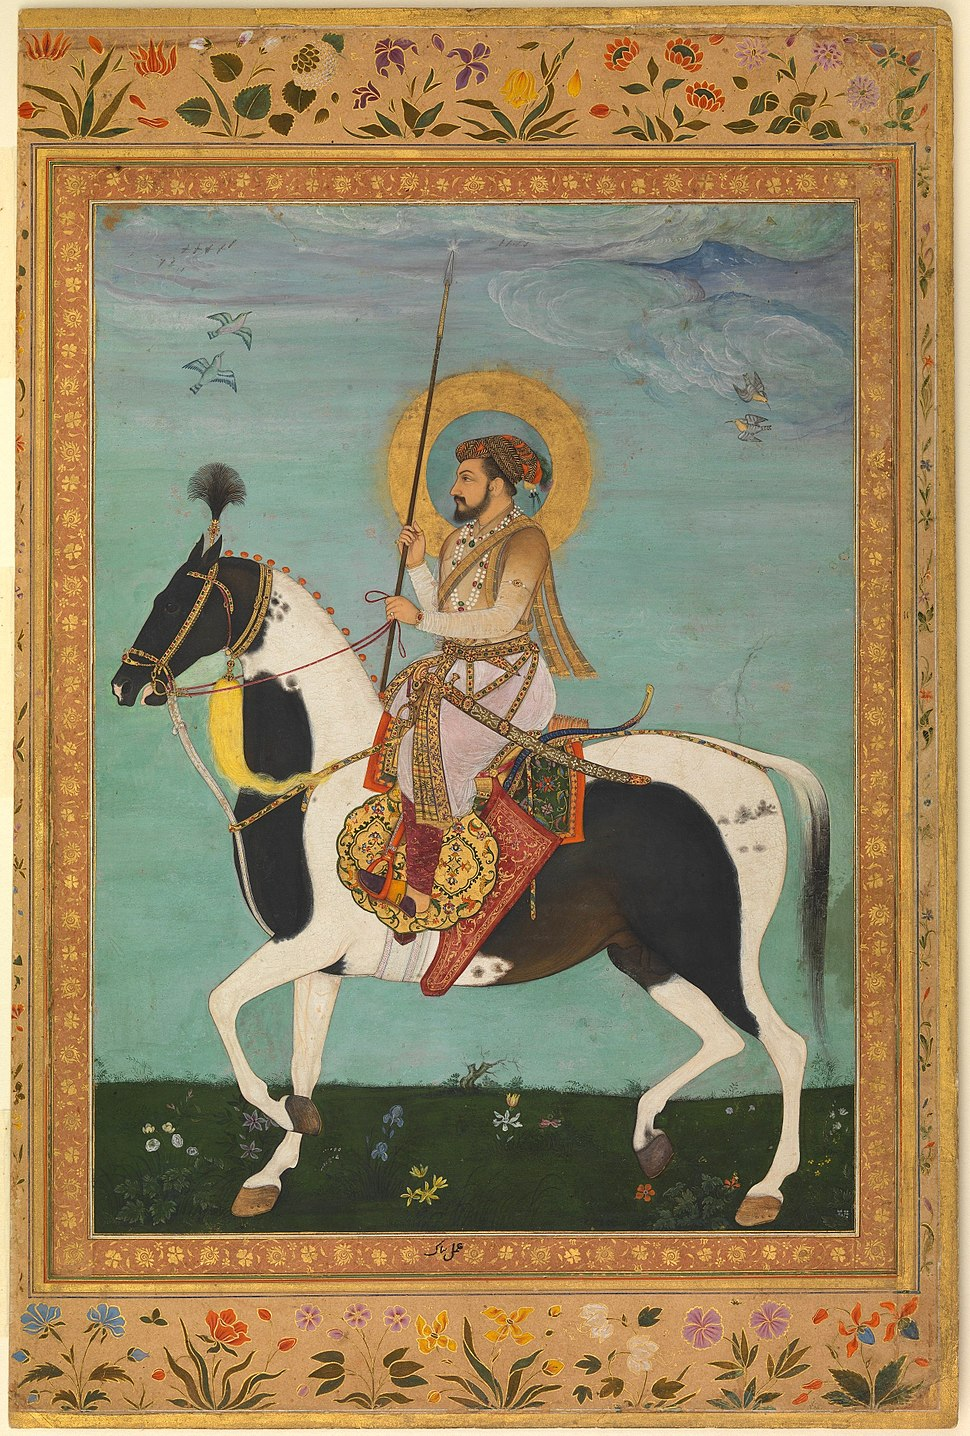 Payag, Shah Jahan on Horseback, Folio from the Shah Jahan Album ca. 1630, Metmuseum